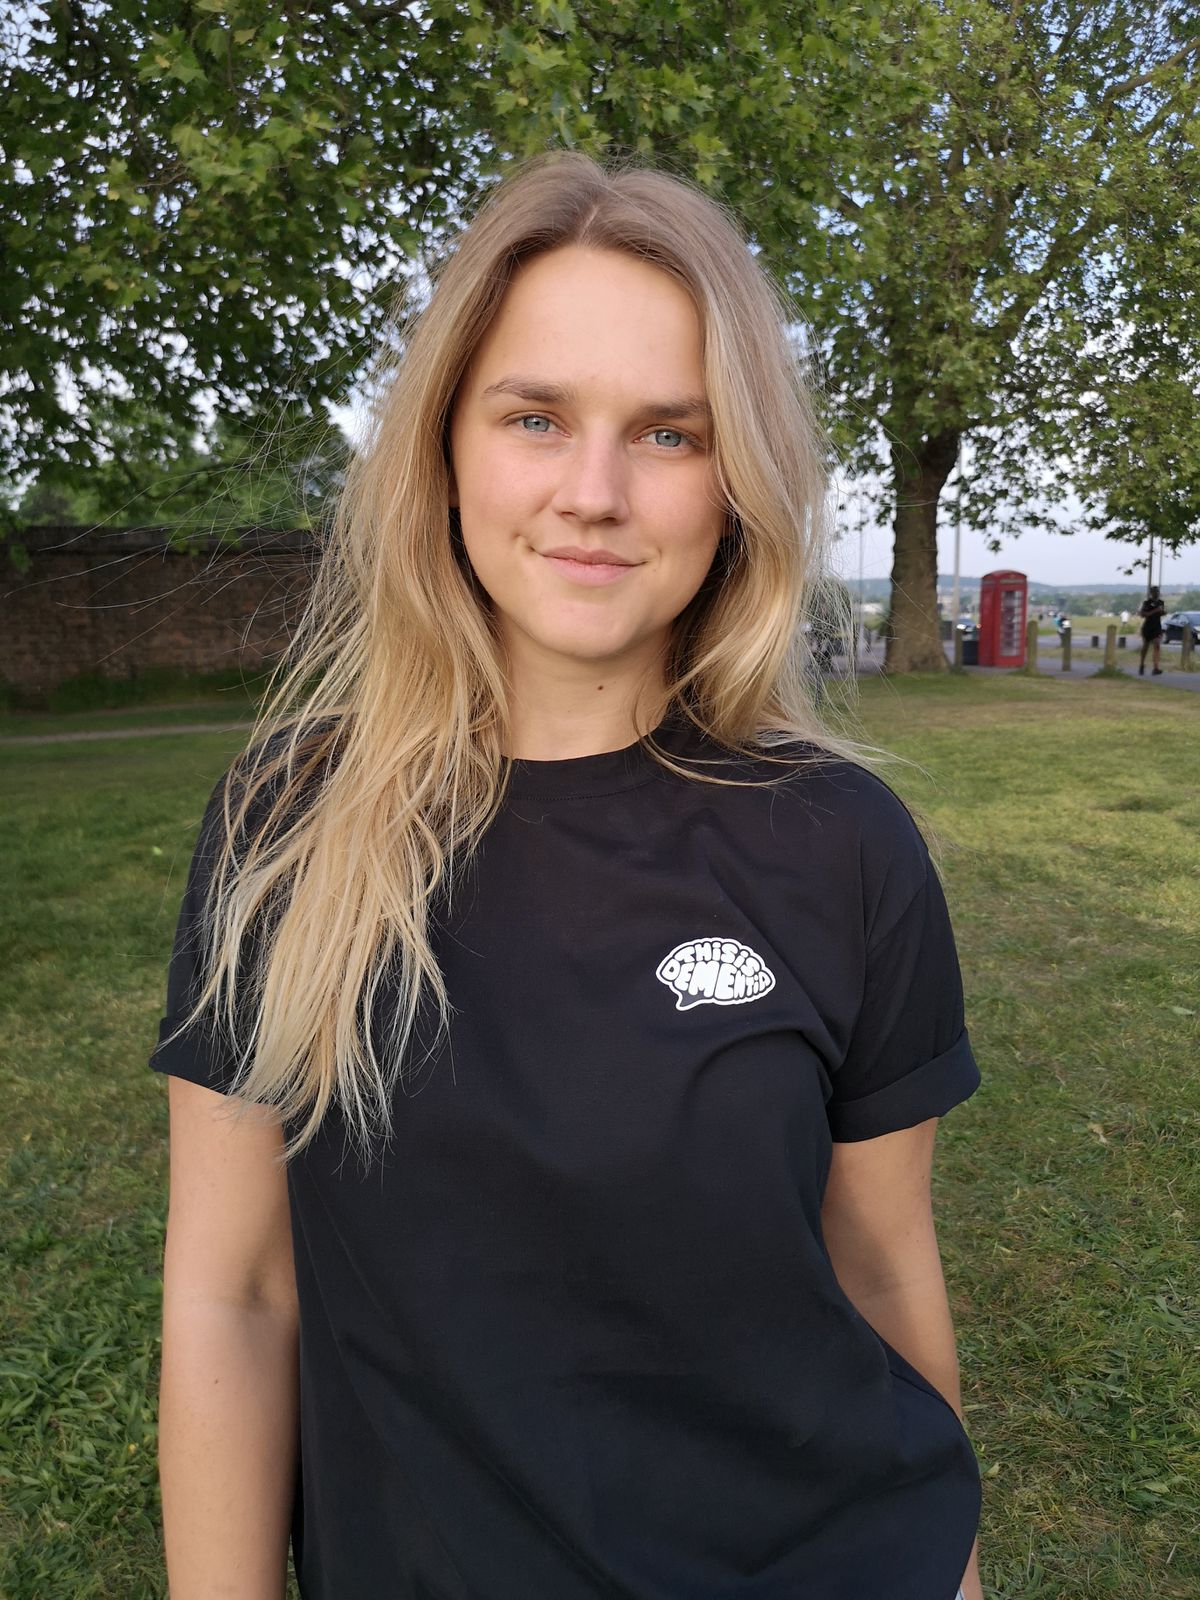 Lizzie Perry in one of the This is Dementia T-shirts